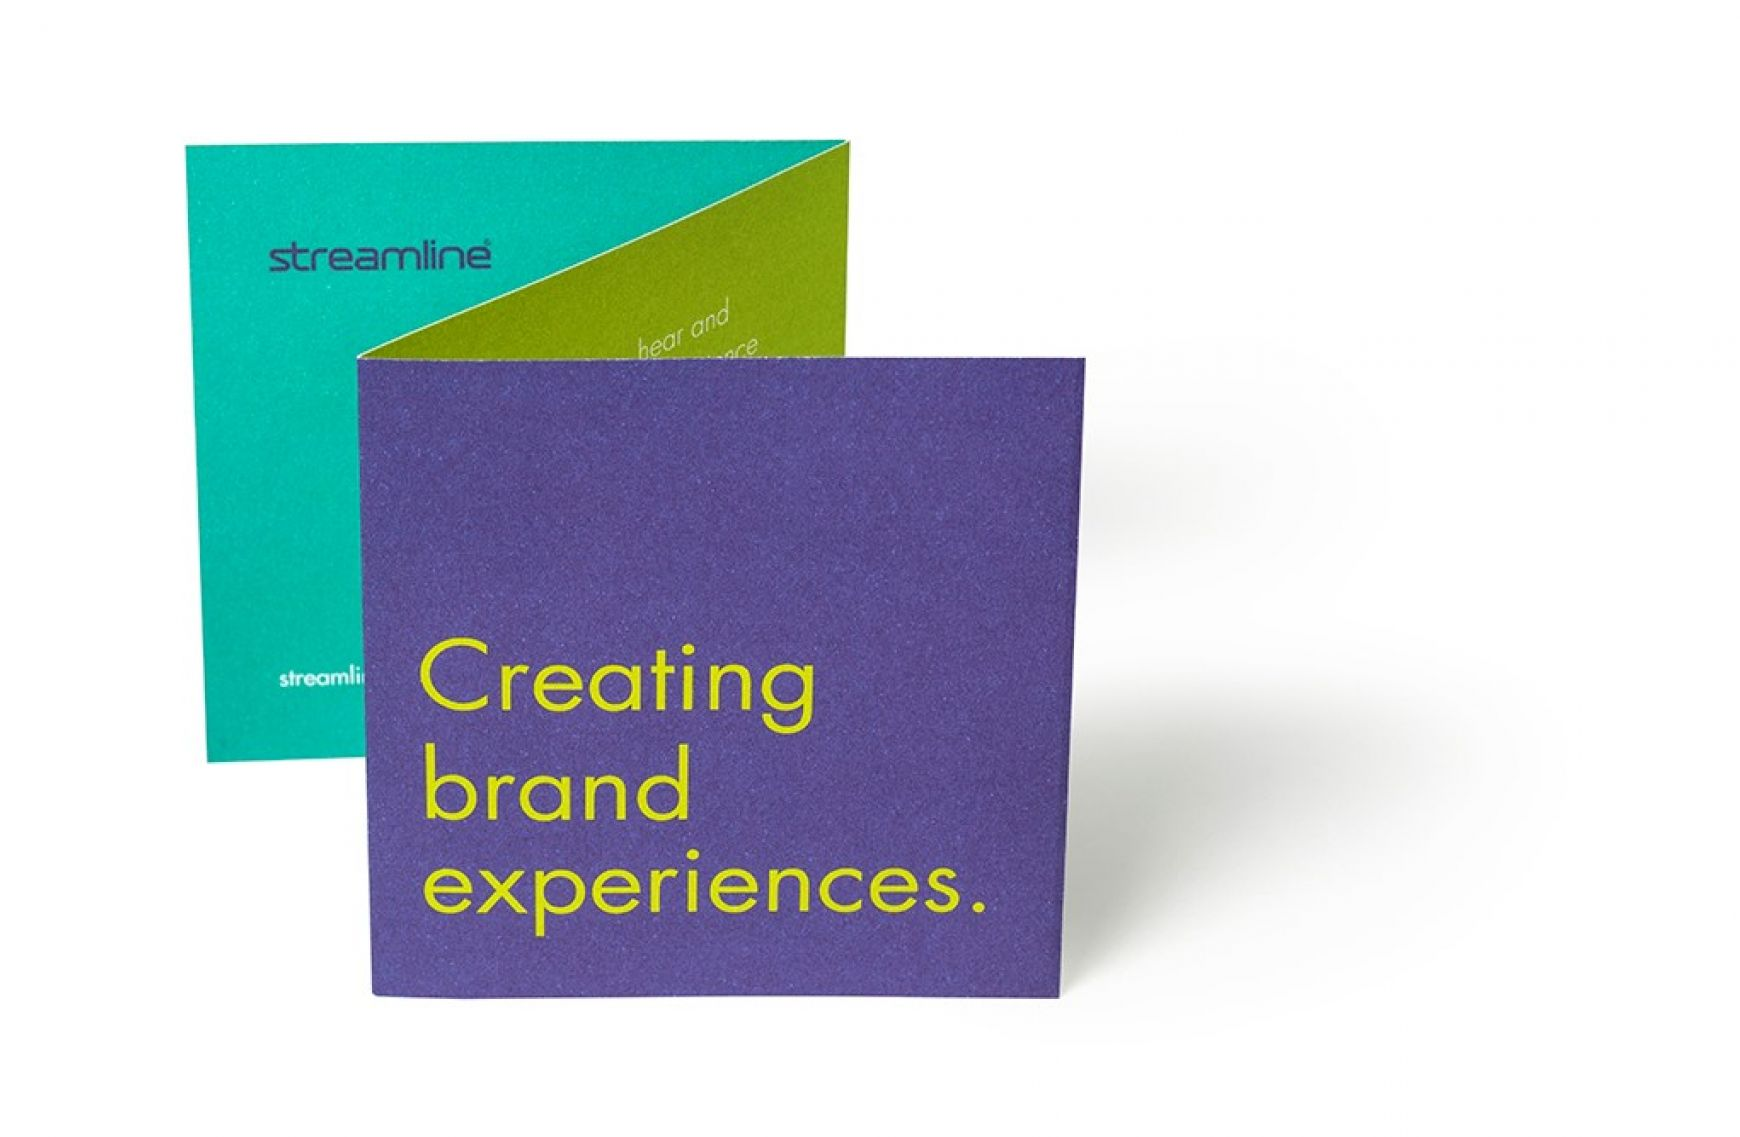 streamline - creating brand experiences